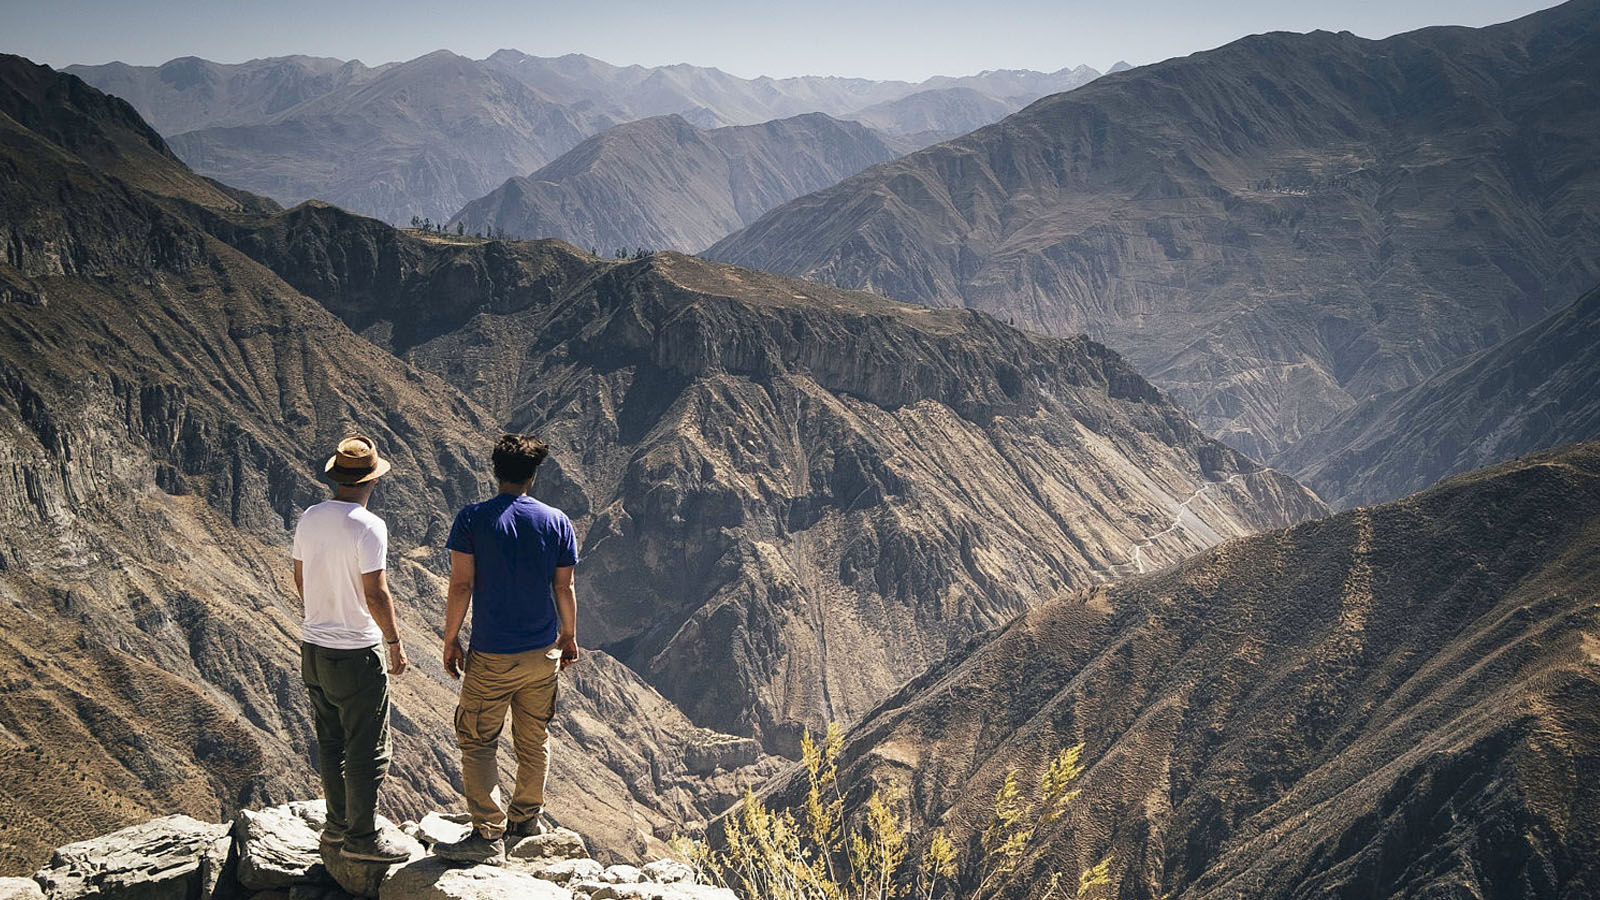 Foto 1 de Colca Canyon 2 days / 1 night Conventional Tour